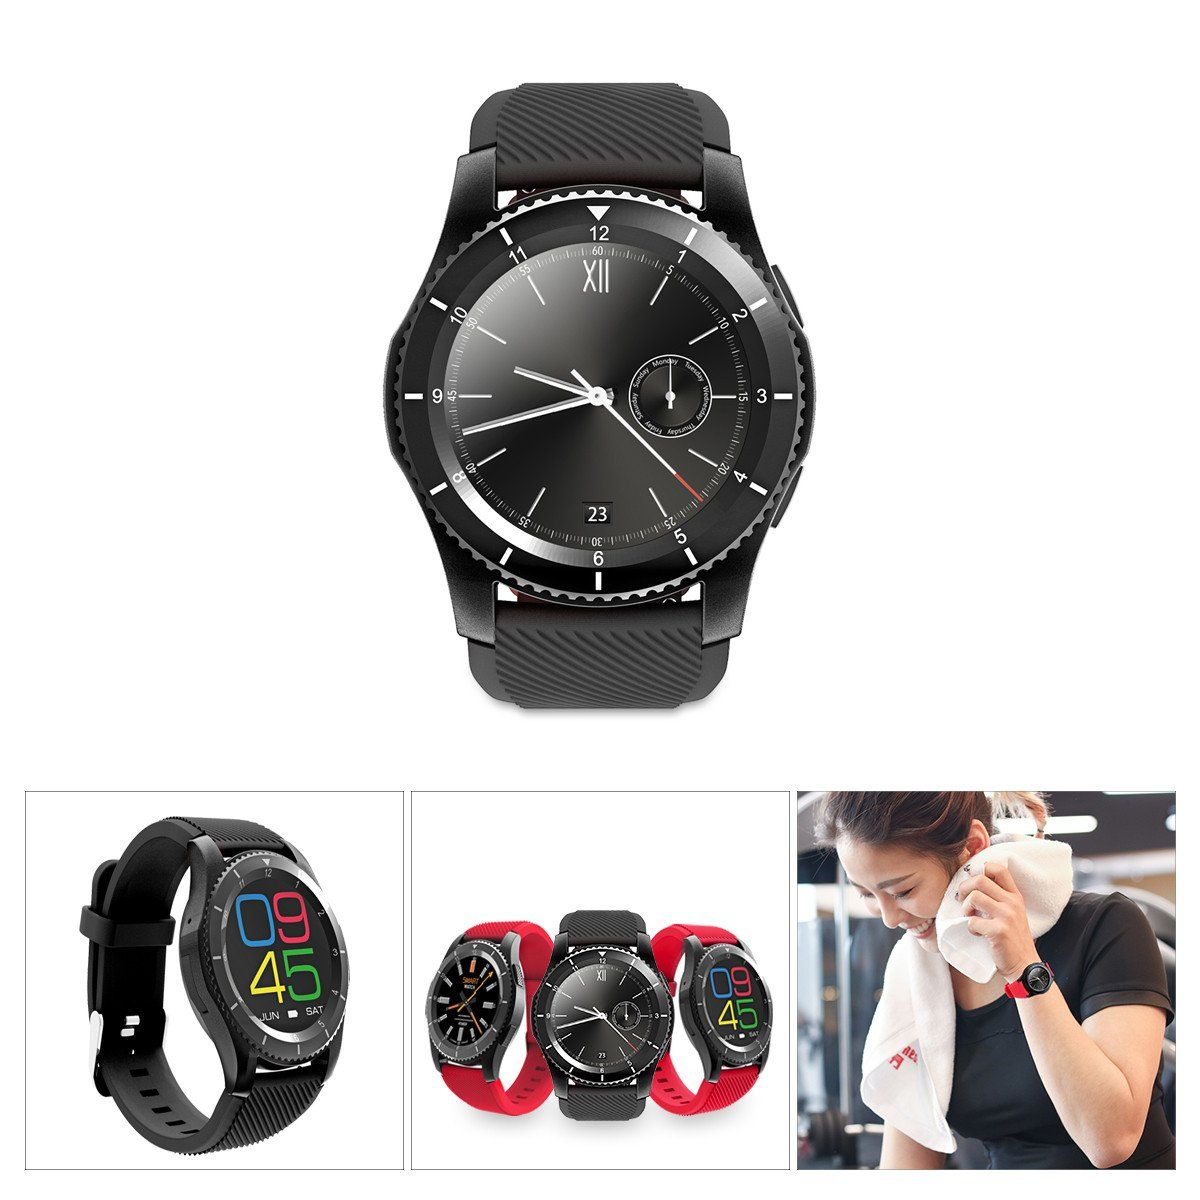 FeaturesBluetooth 4.0 smart watch, 3 modes switchable